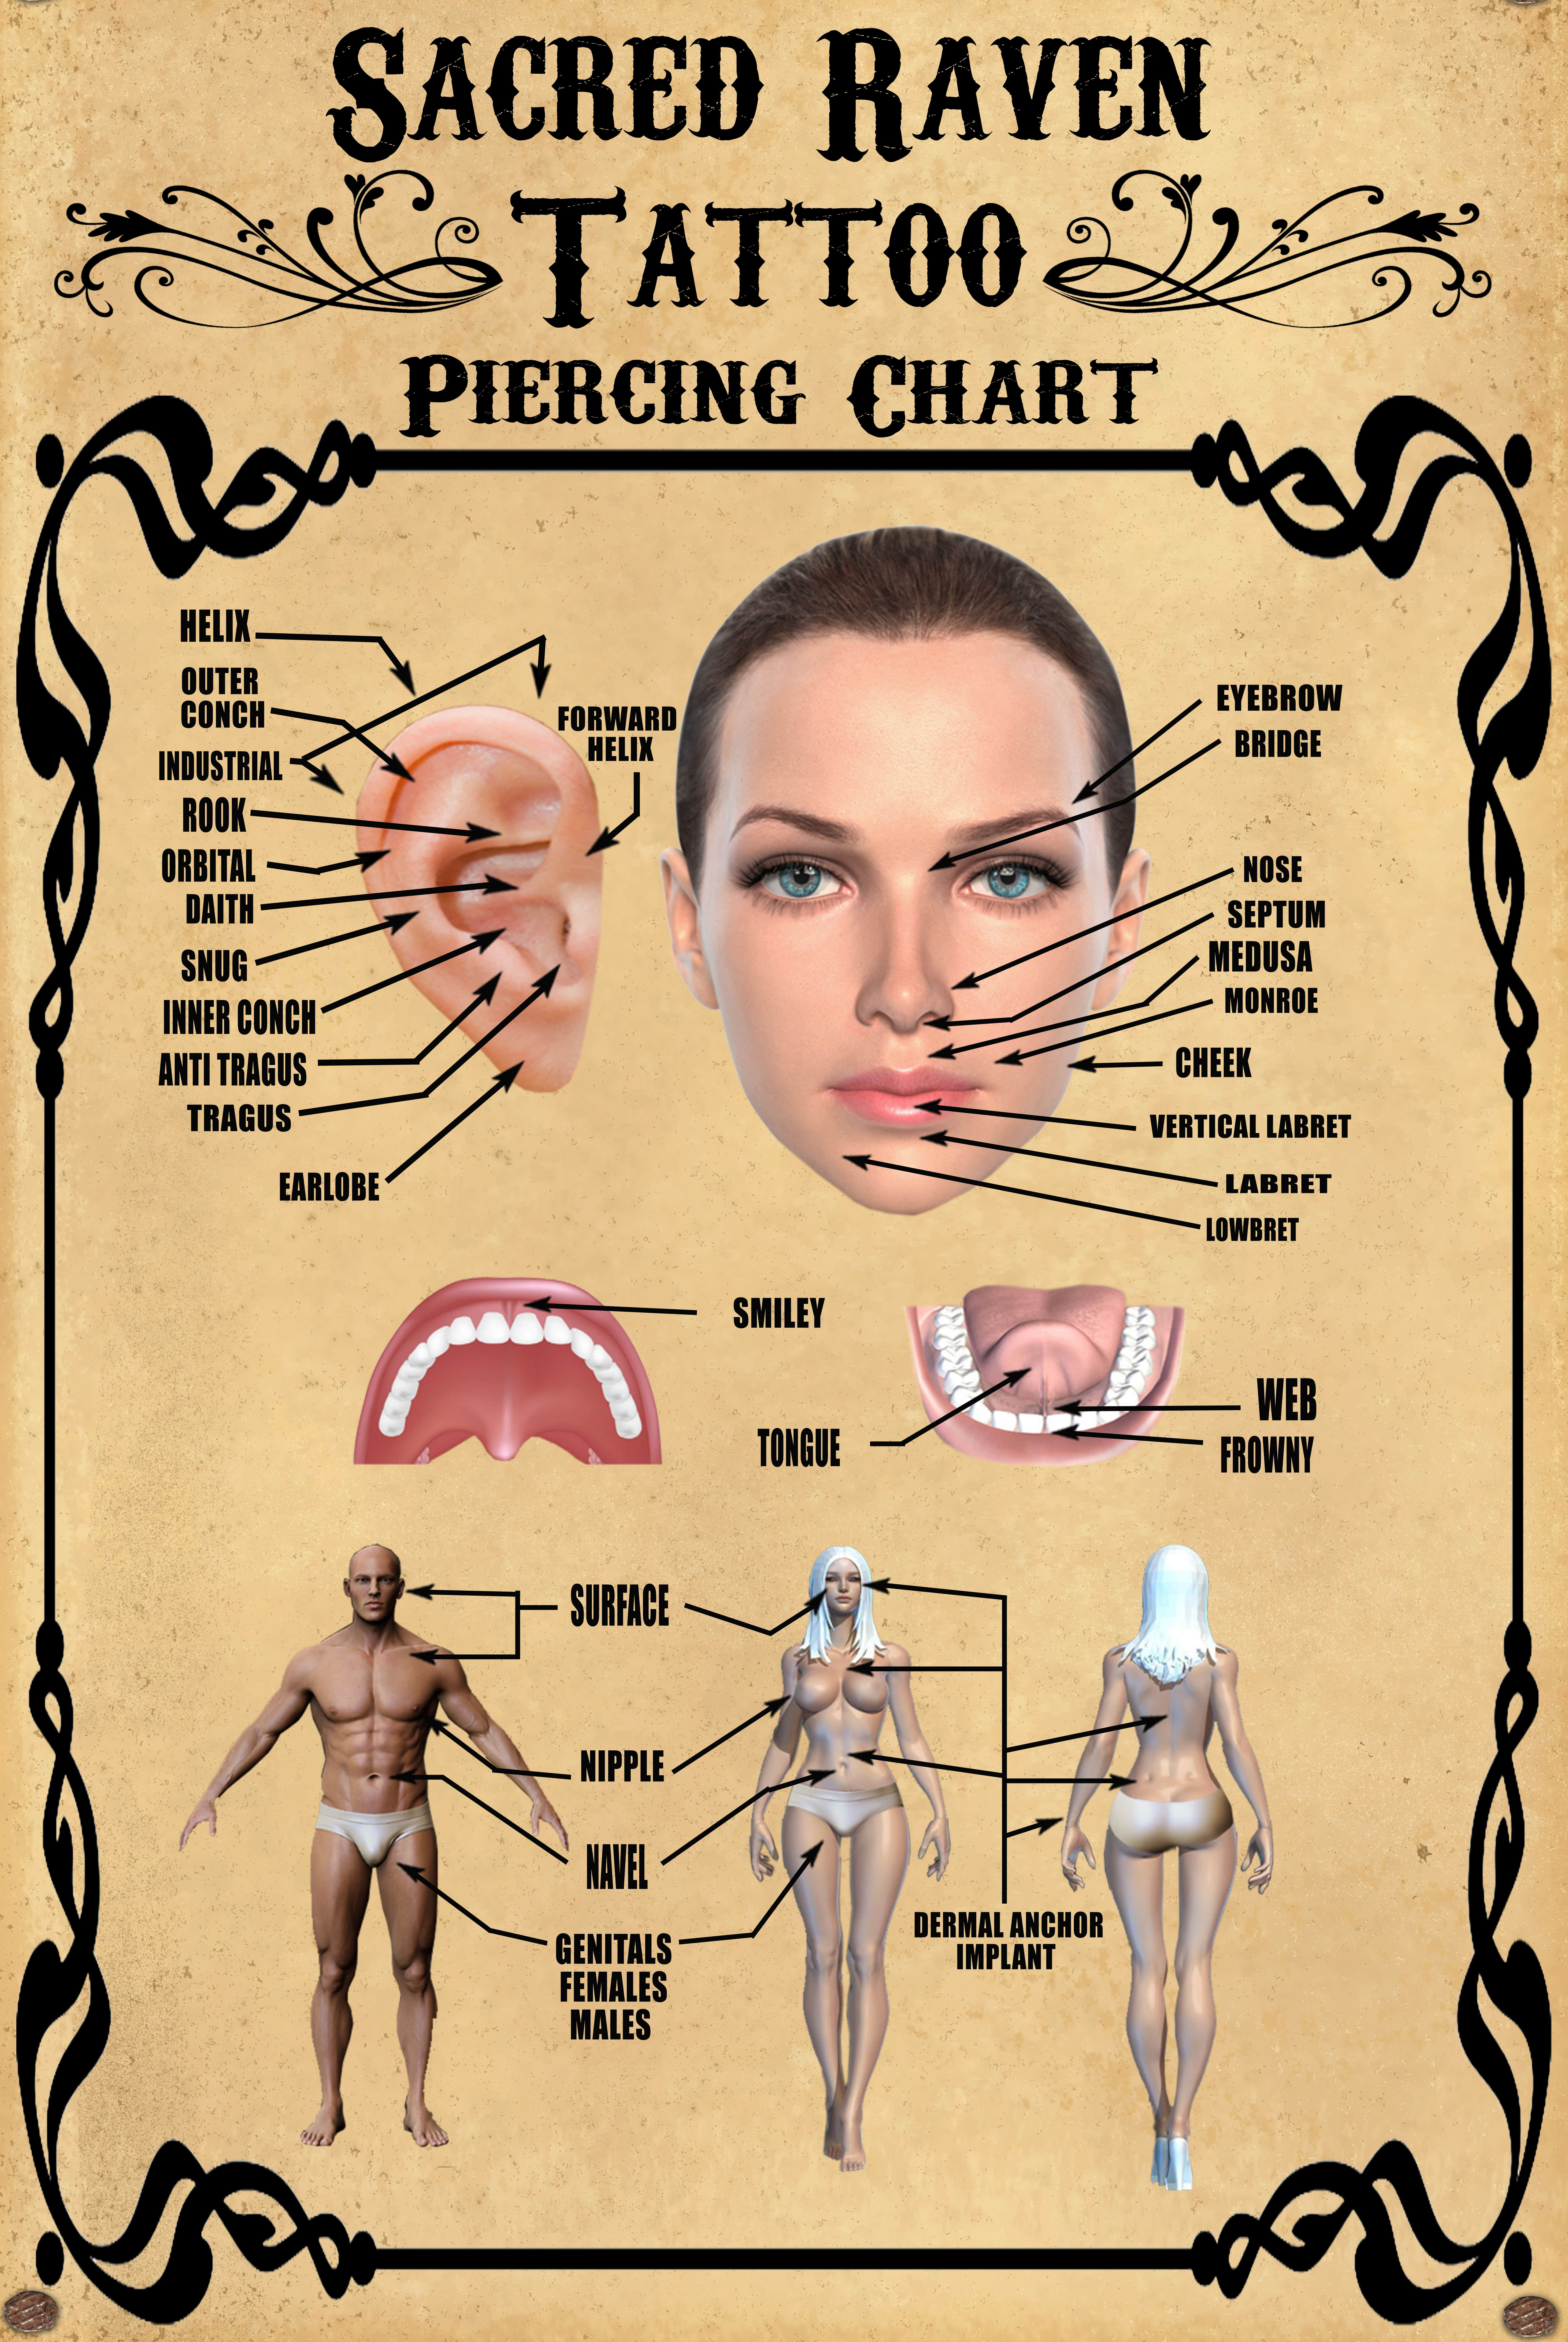 Piercing Studio Near Me : piercing, studio, Piercings, Piercing, Parlor, Fayetteville, Sacred, Raven, Tattoo